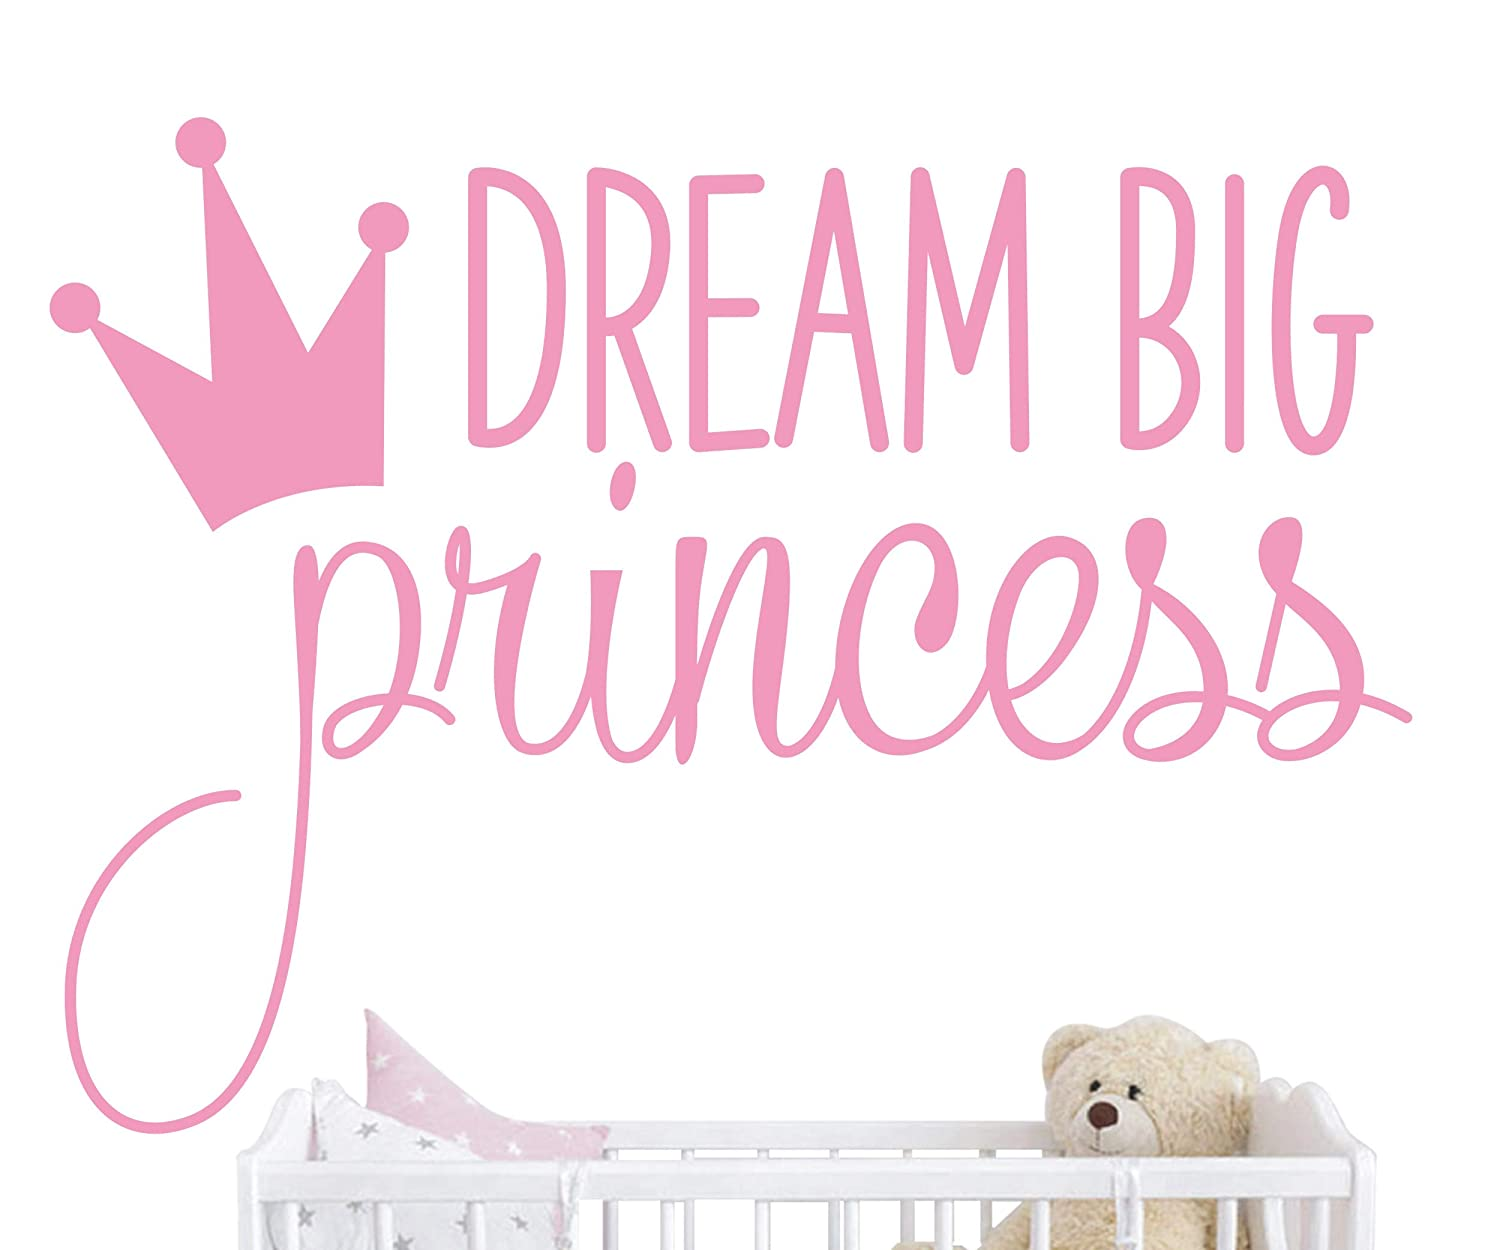 JURUOXIN Dream Big Princess with Crown Wall Decal Vinyl Sticker for Kids Baby Girls Bedroom Decoration Nursery Home Decor Mural Design YMX18 (Soft Pink)